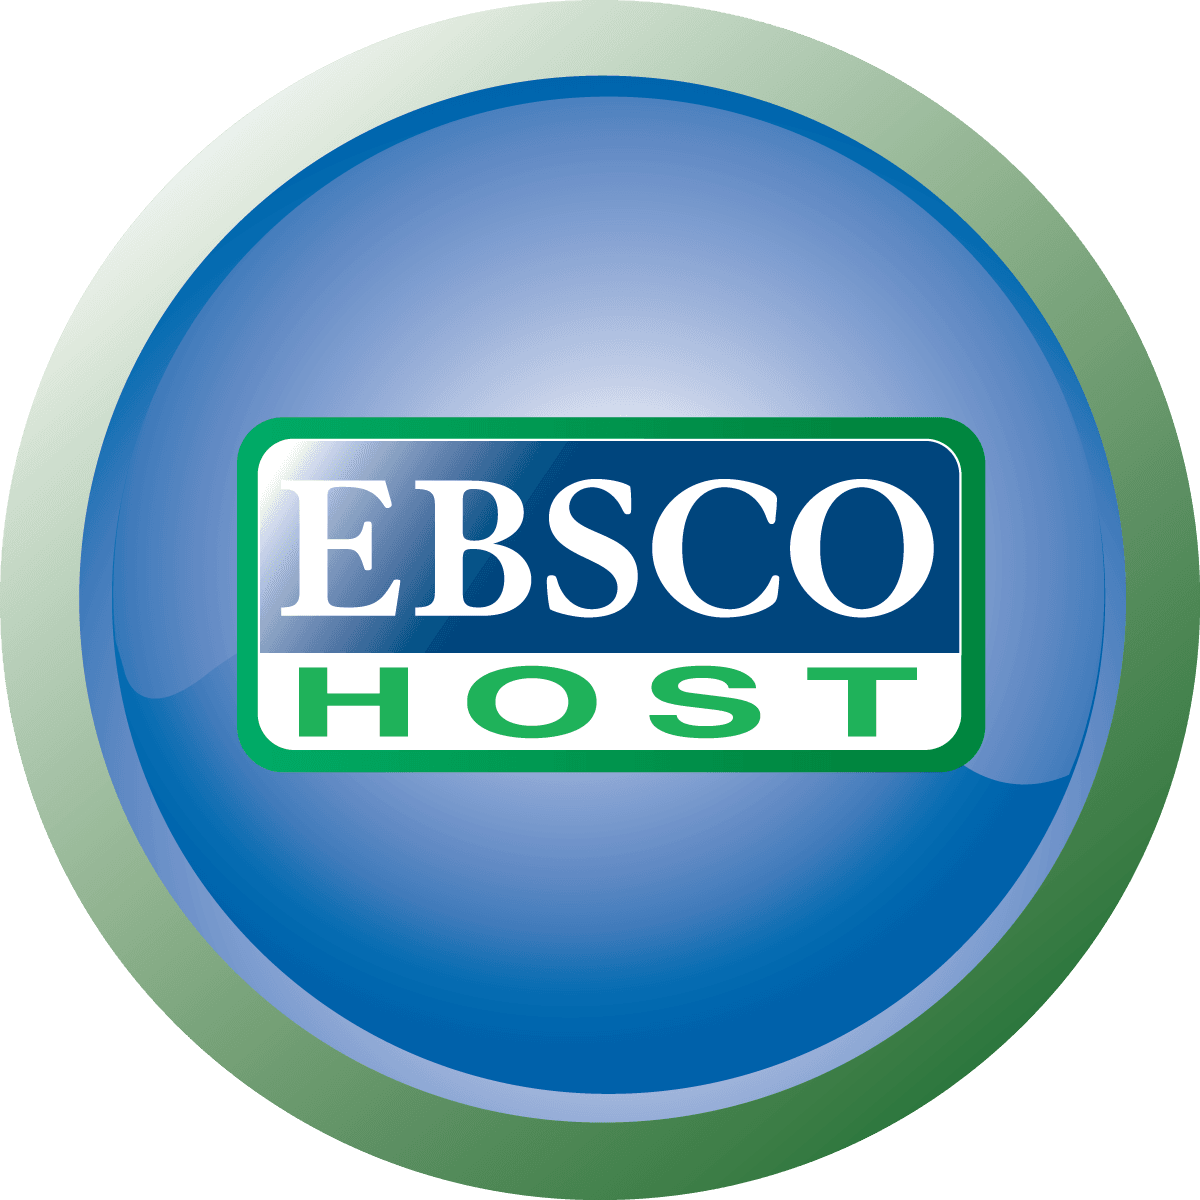 EBSCO Host Big Logo